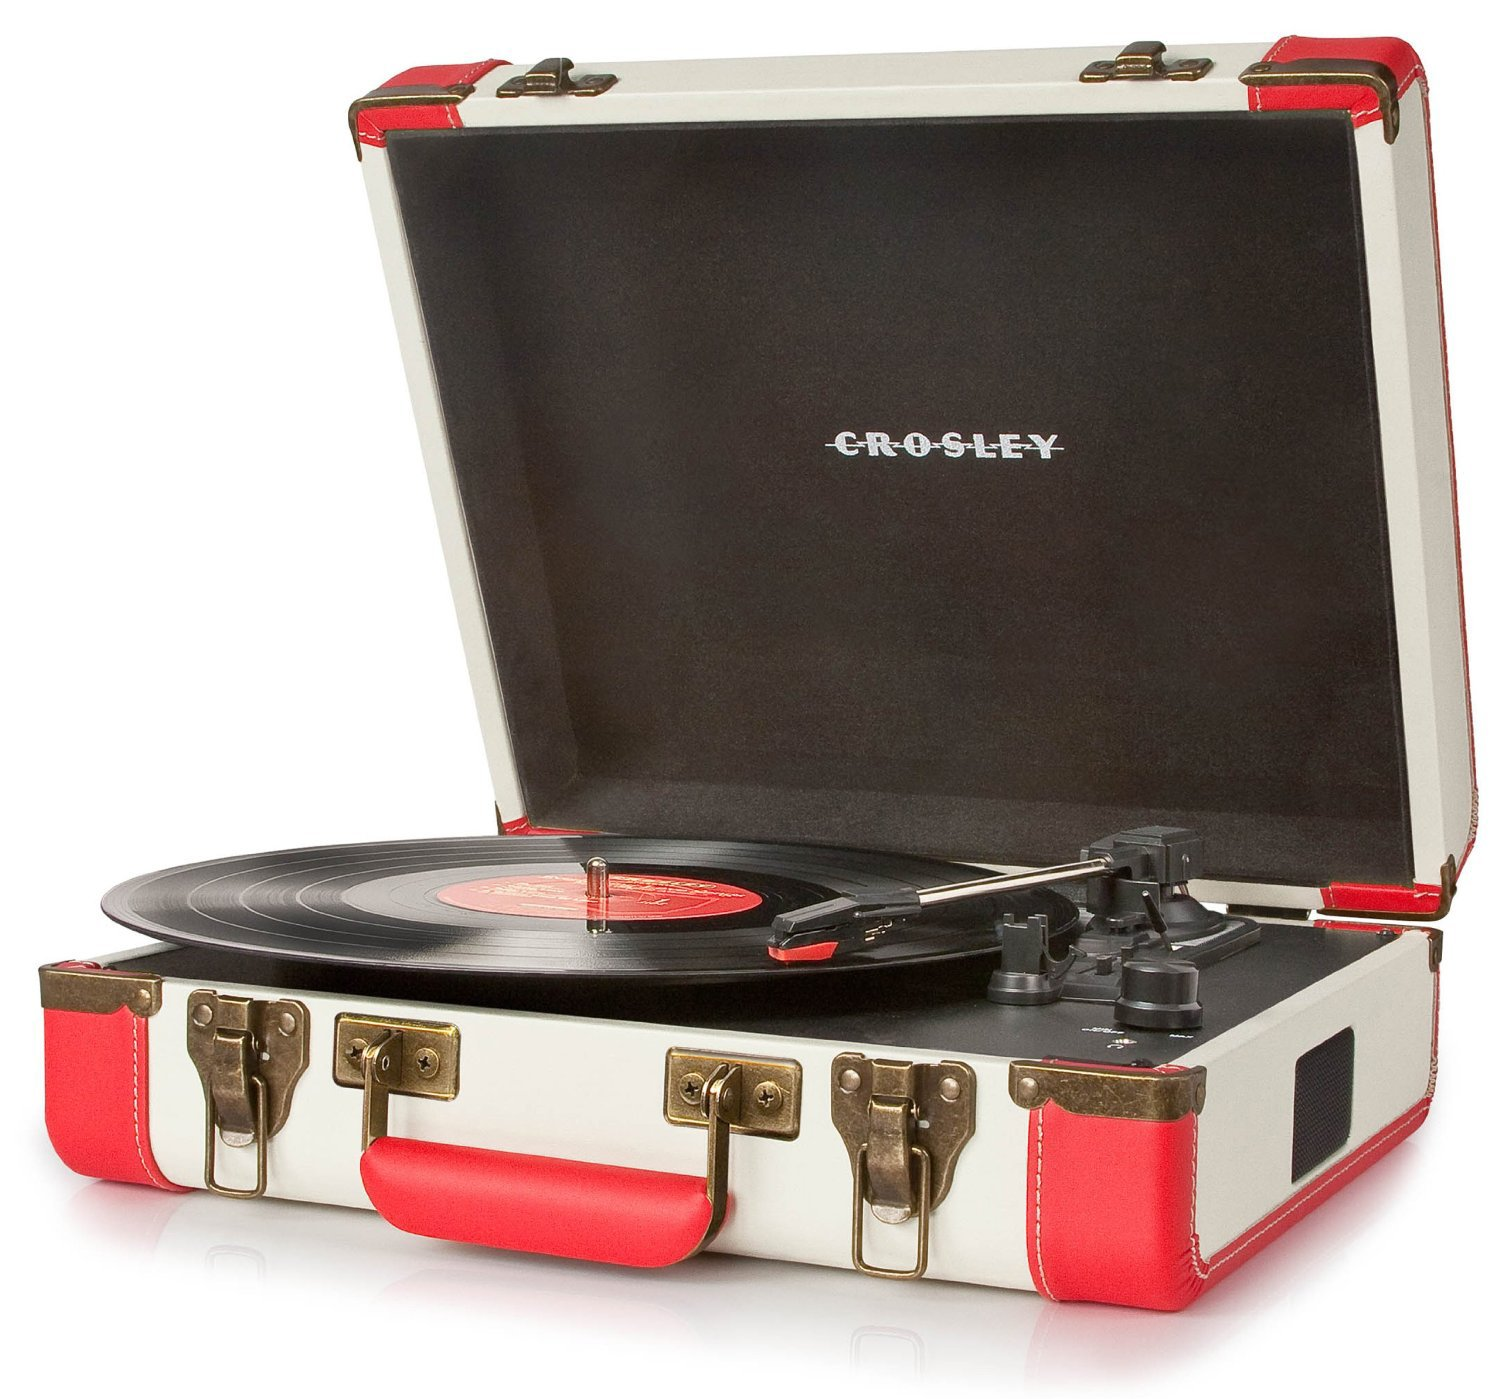 Crosley deluxe red side view